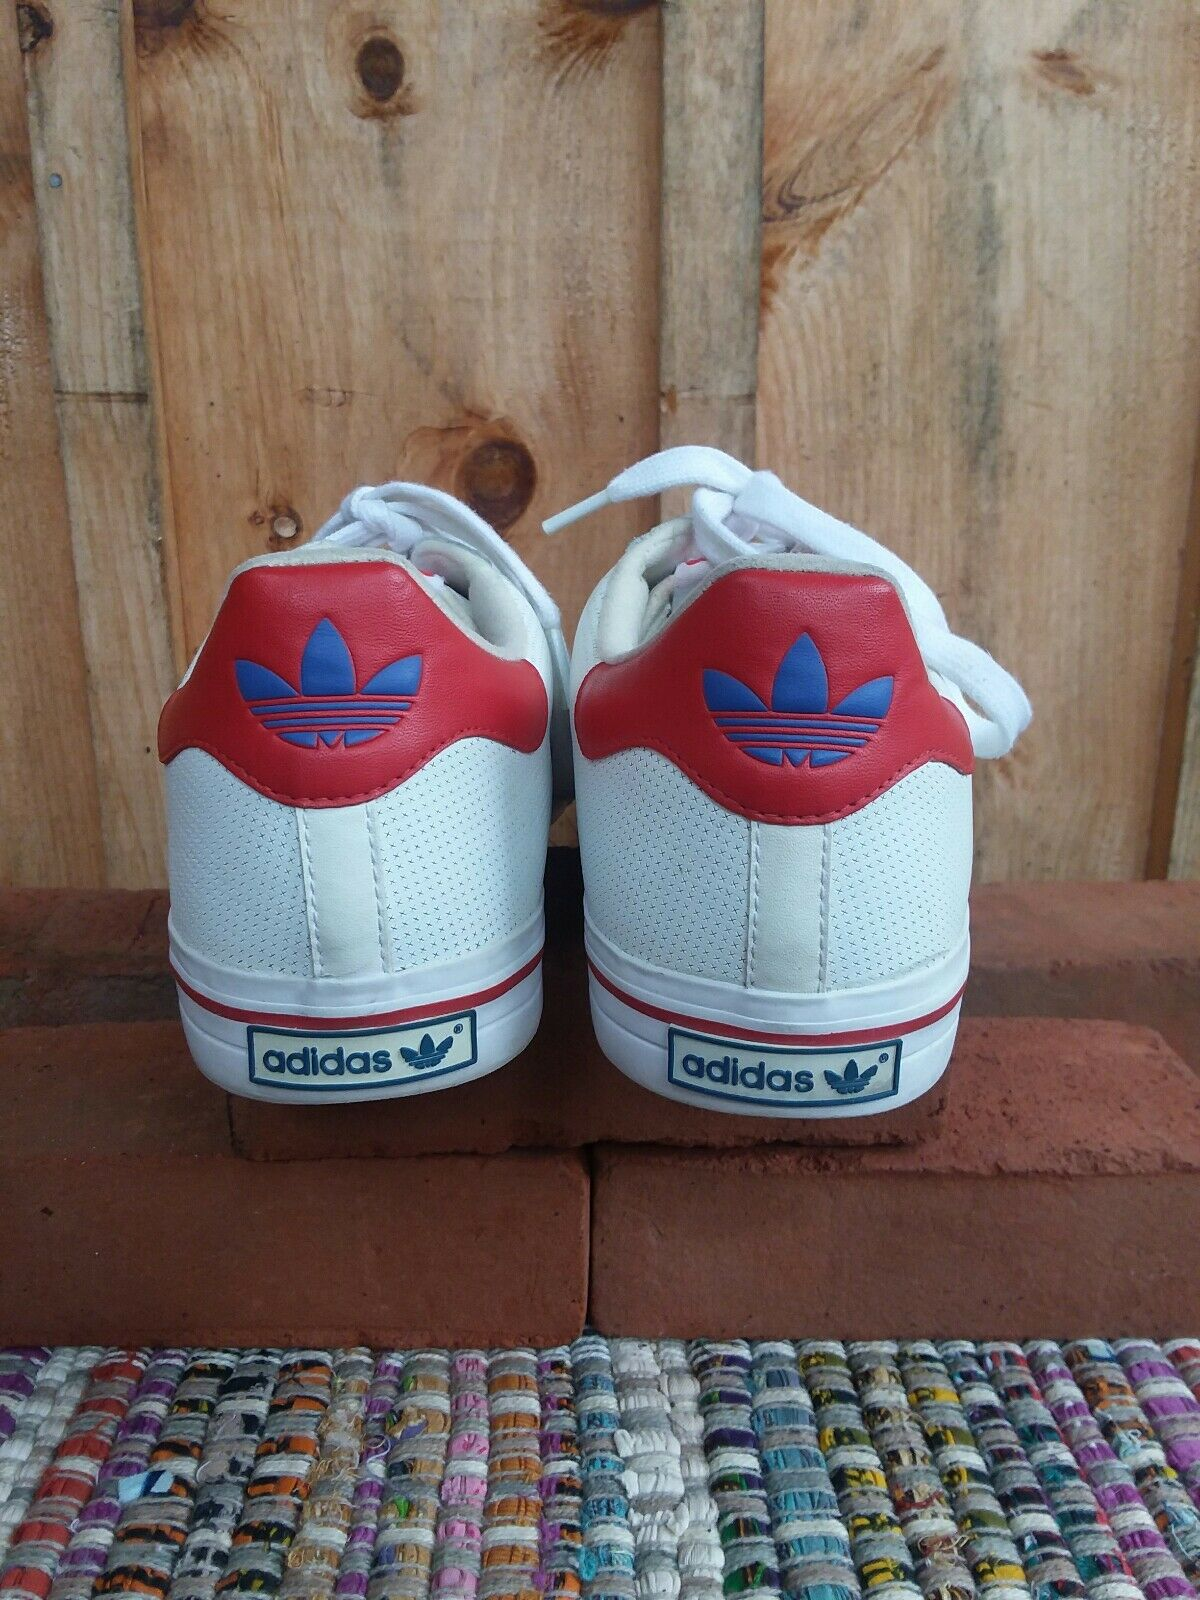 Adidas  The Brand With The 3 Stripes  Red, White And bluee  Sz 12 Men's